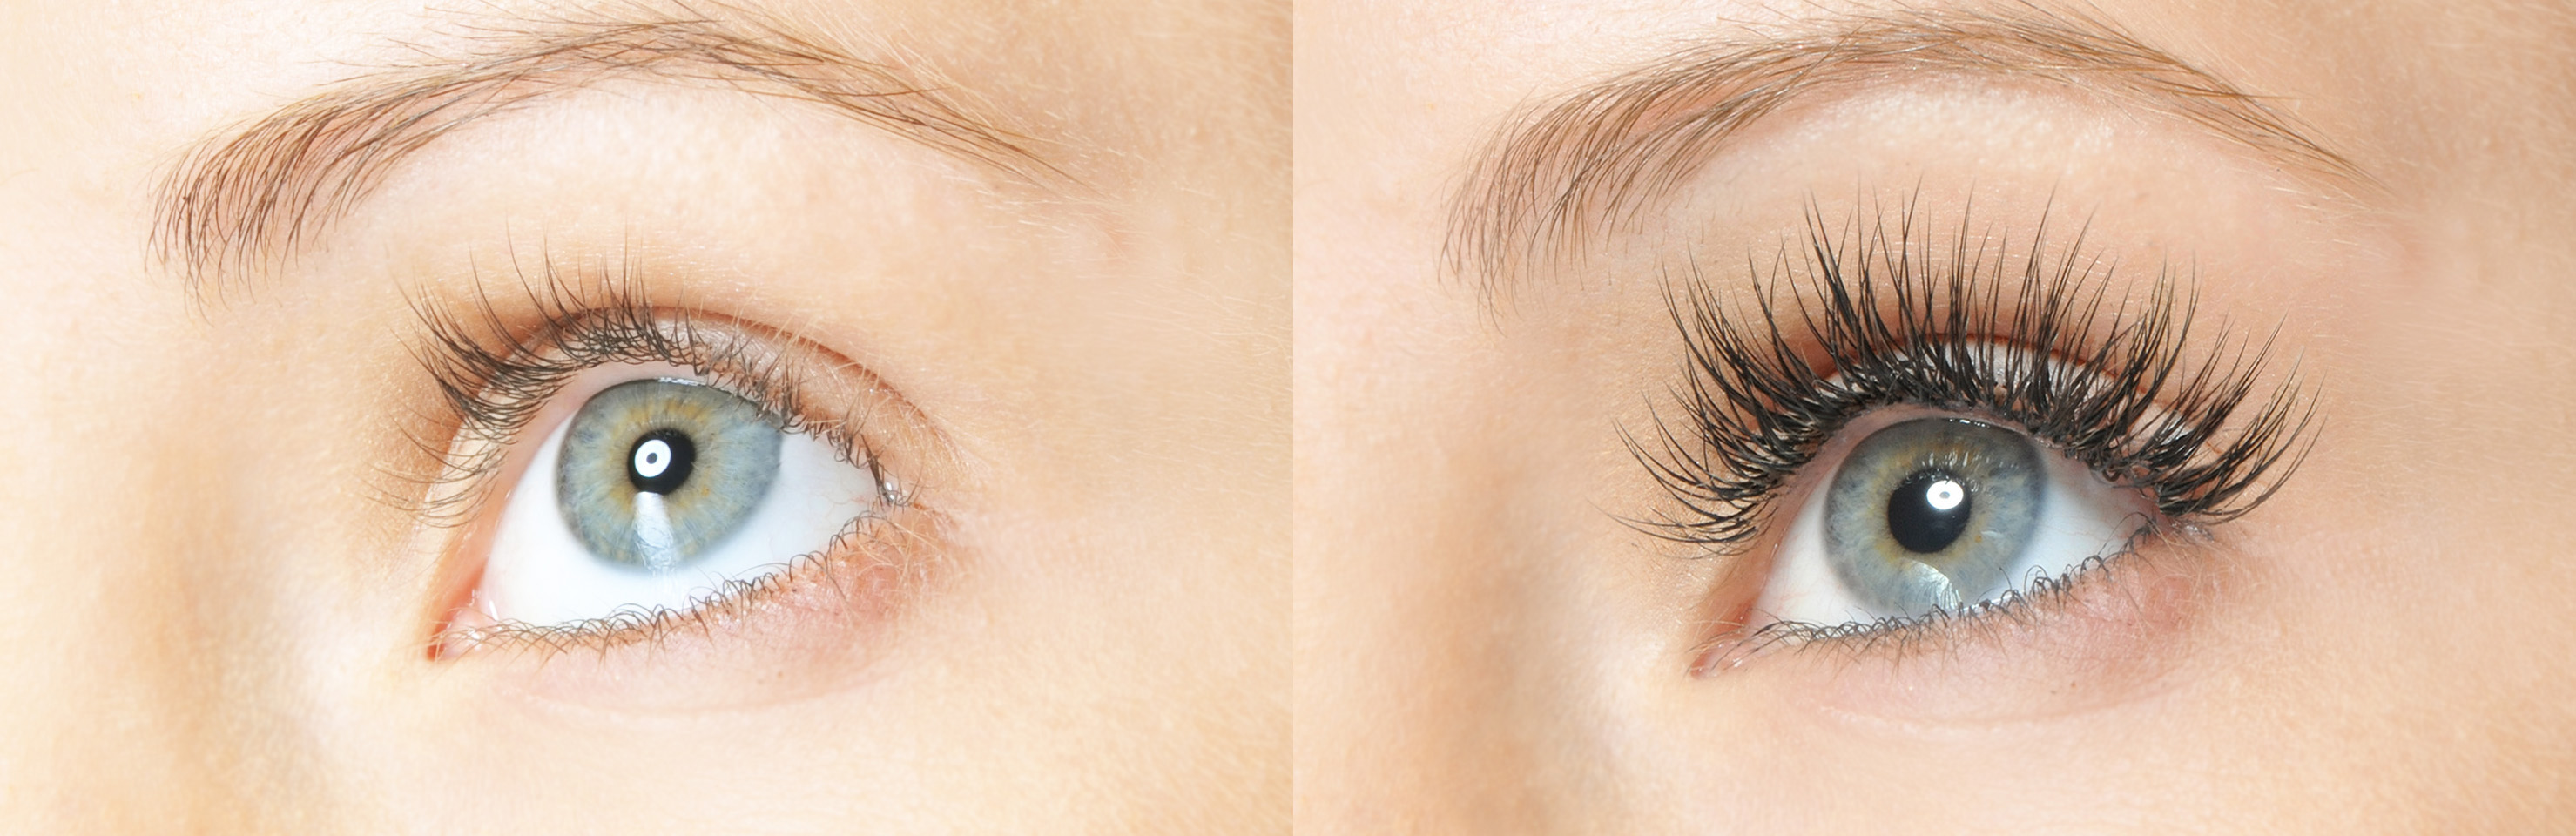 I Lash Extensions Salons Lovely Eyelash Manila Deal Voucher My Salon After Had Printed Proceed Towards The To Have Semi Permanent Prepared For Flutter Ready Lashes